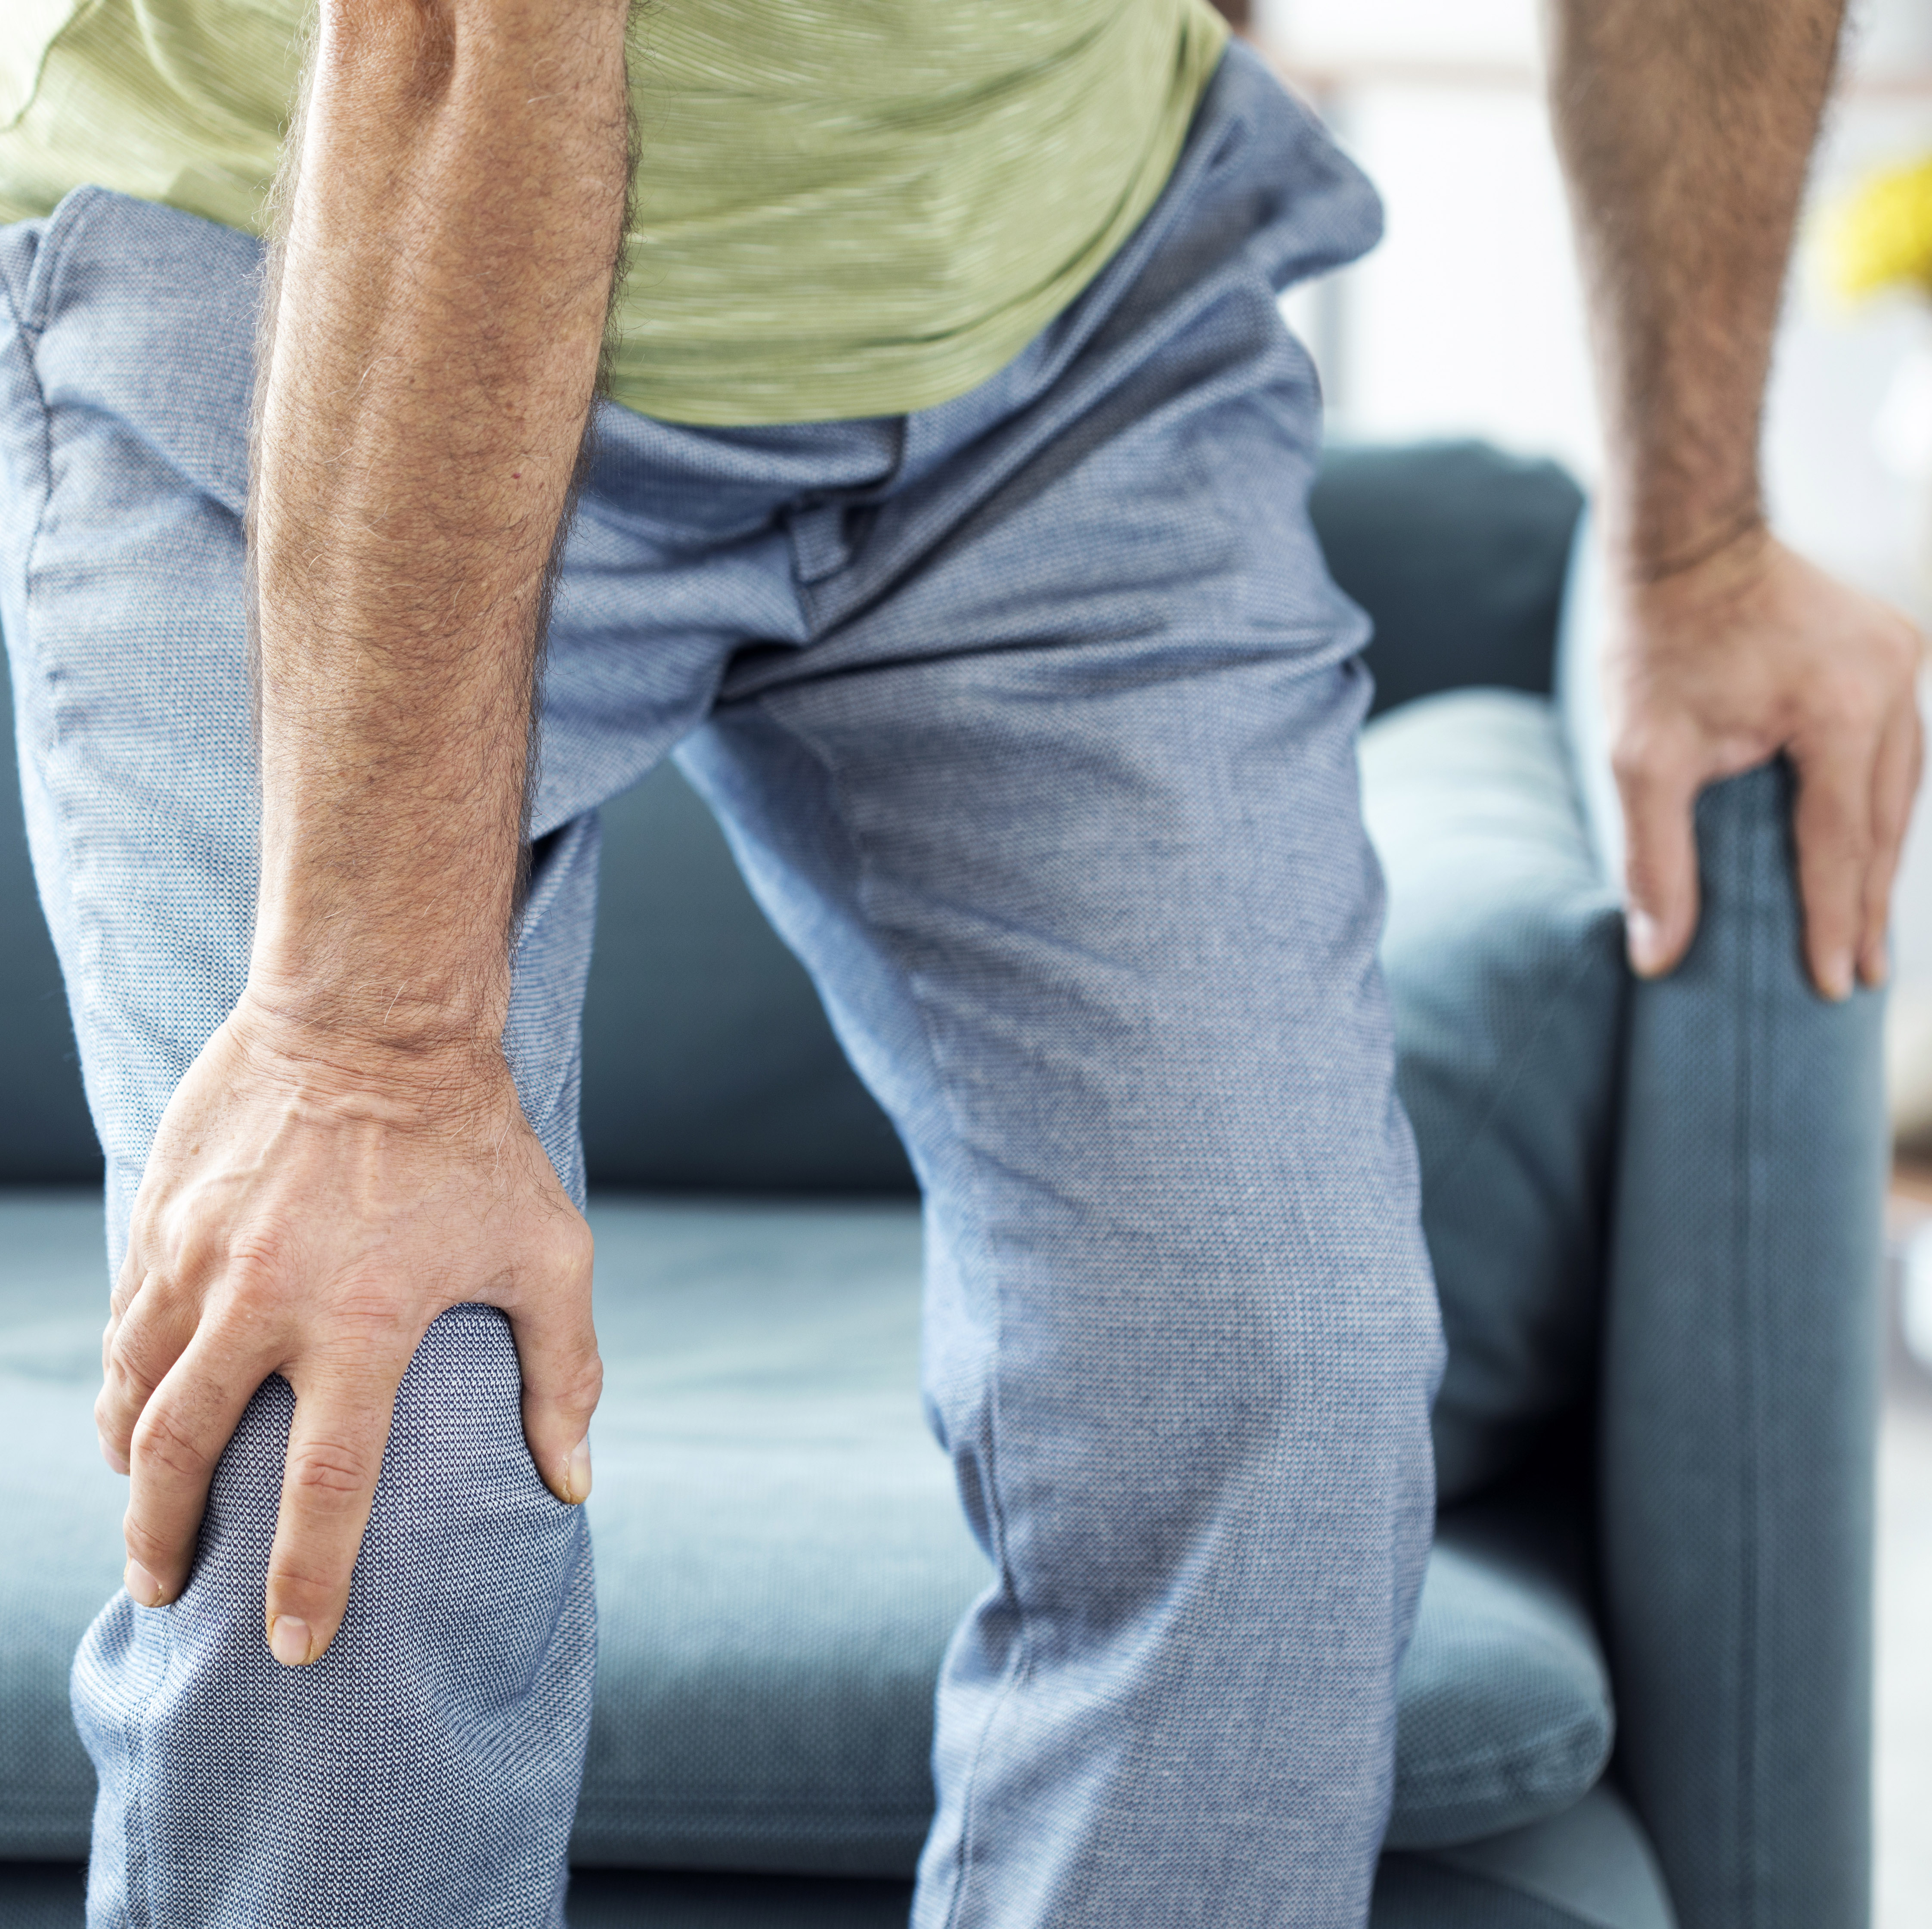 COOLIEF: Non-Narcotic, Non-Surgical Procedure for Pain Management